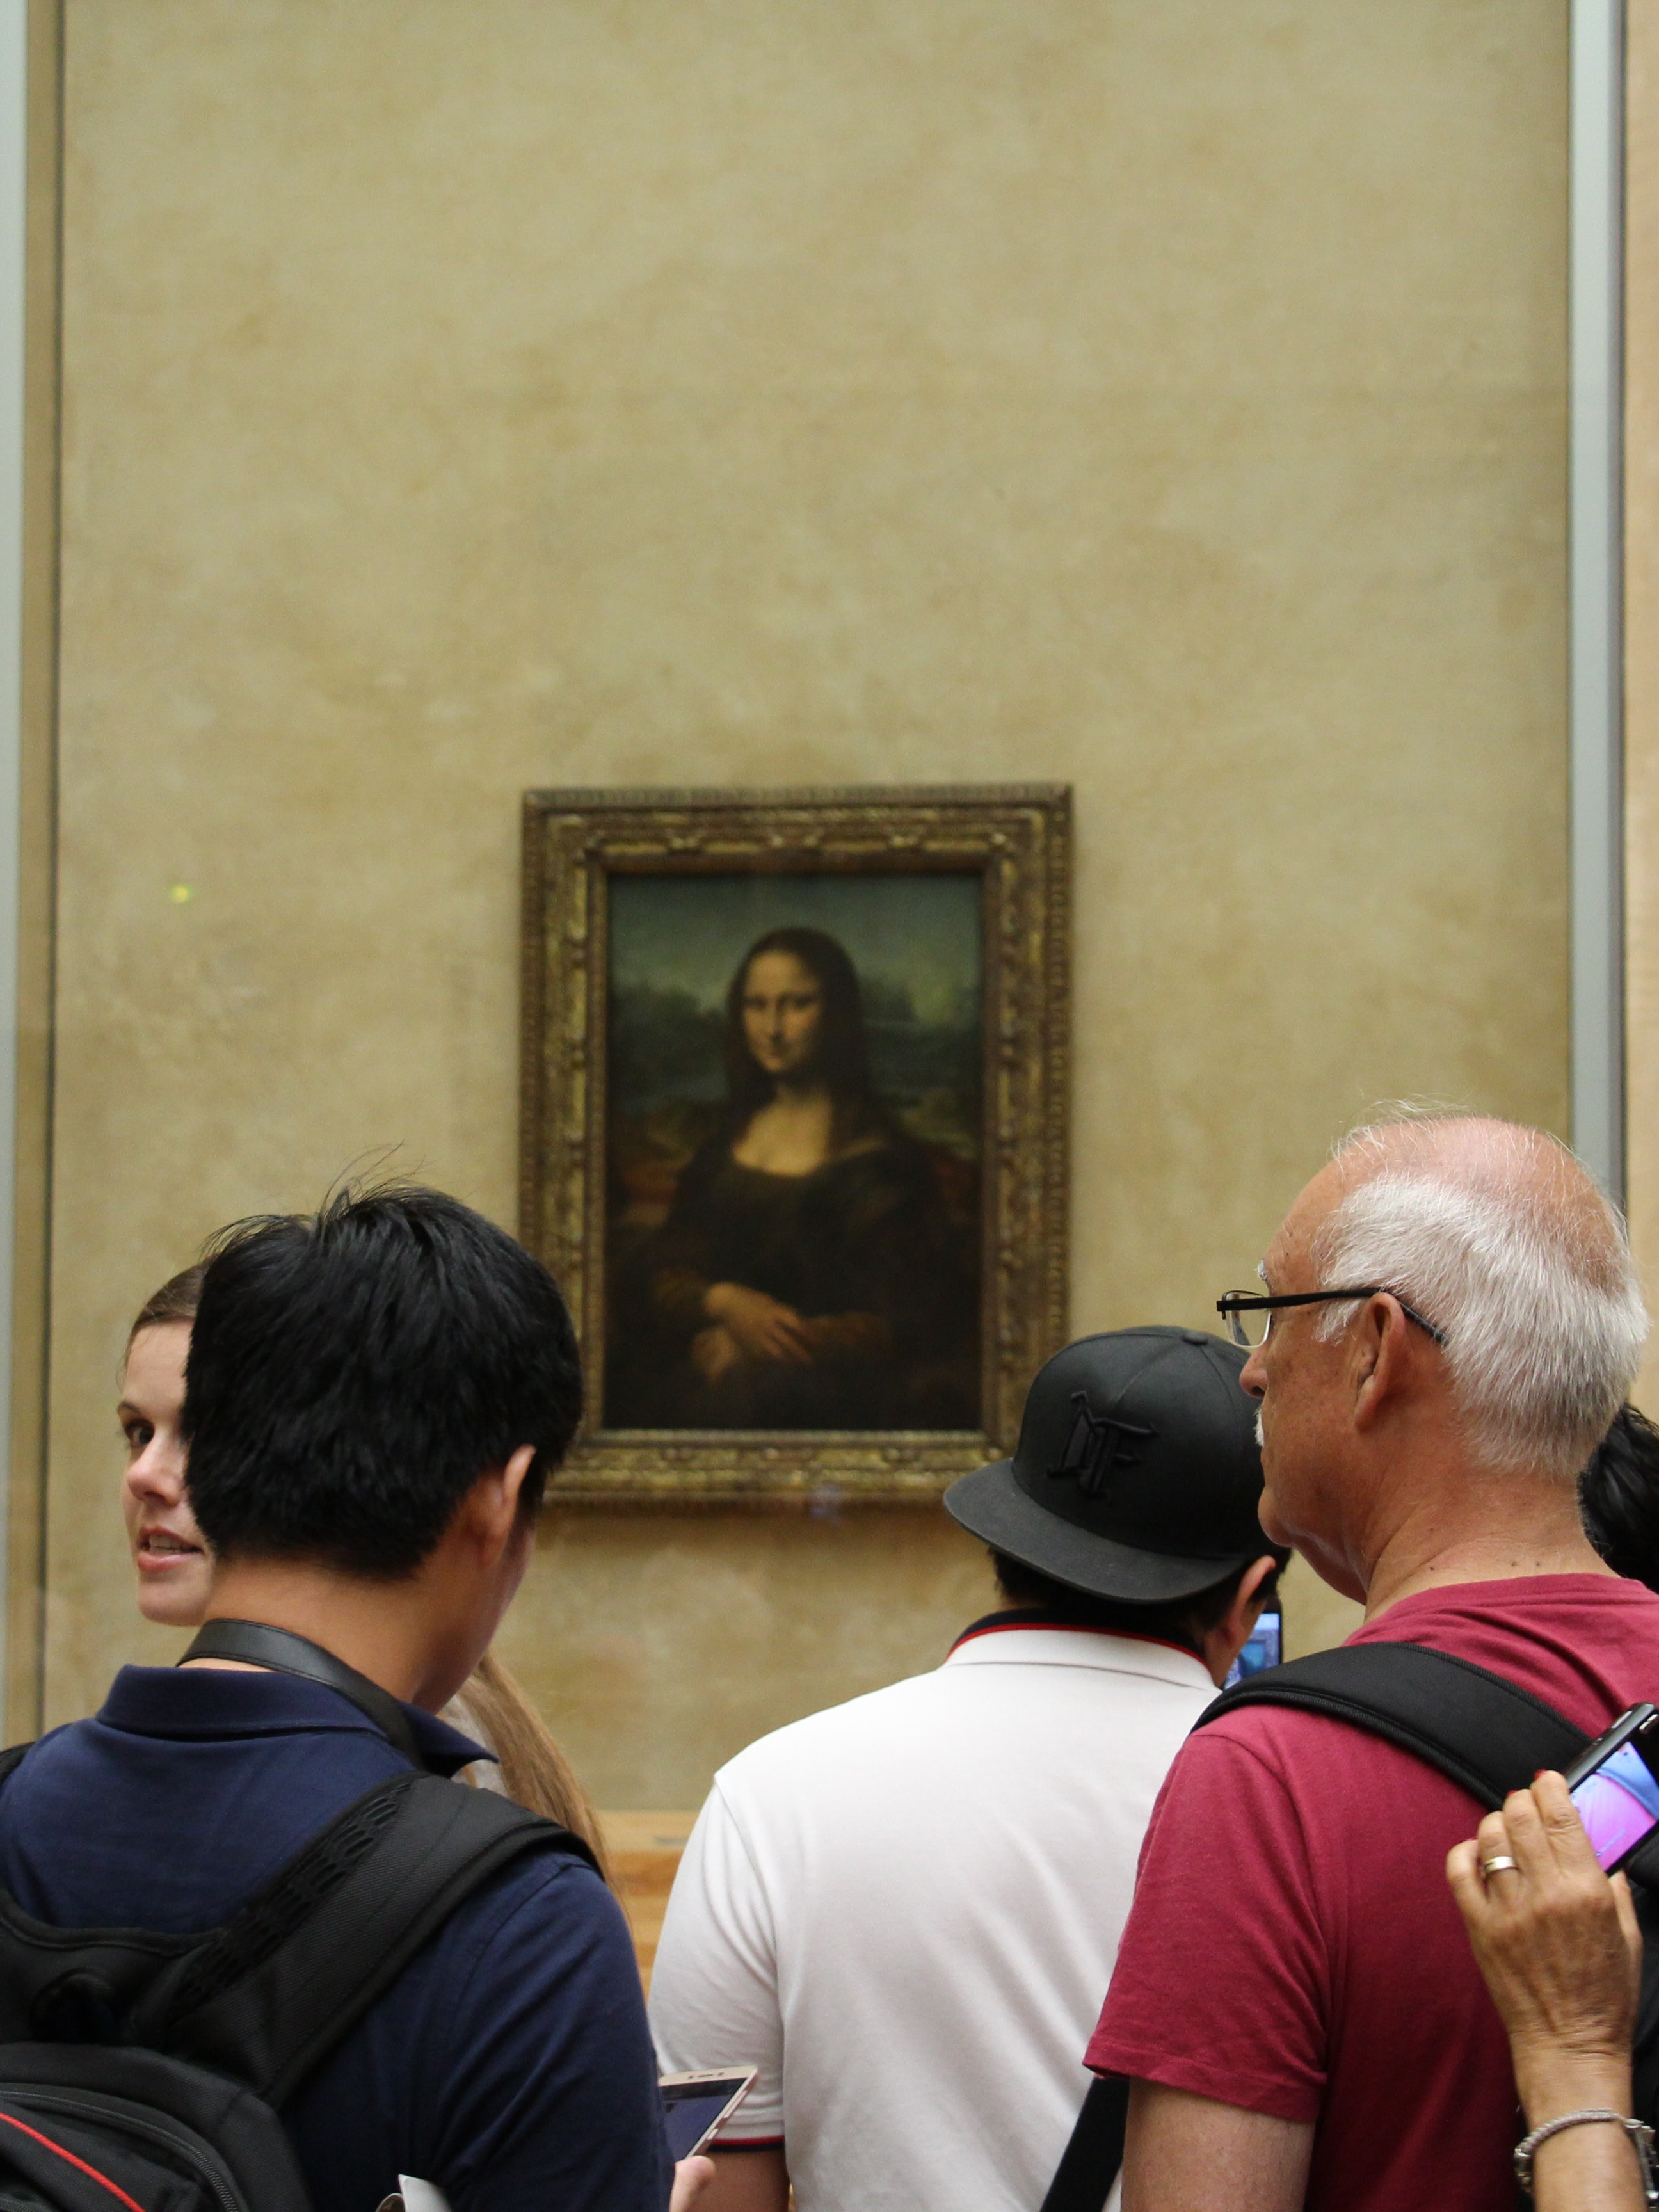 Physician Solves Mystery of Mona Lisa's Smile While Waiting in Louvre Line